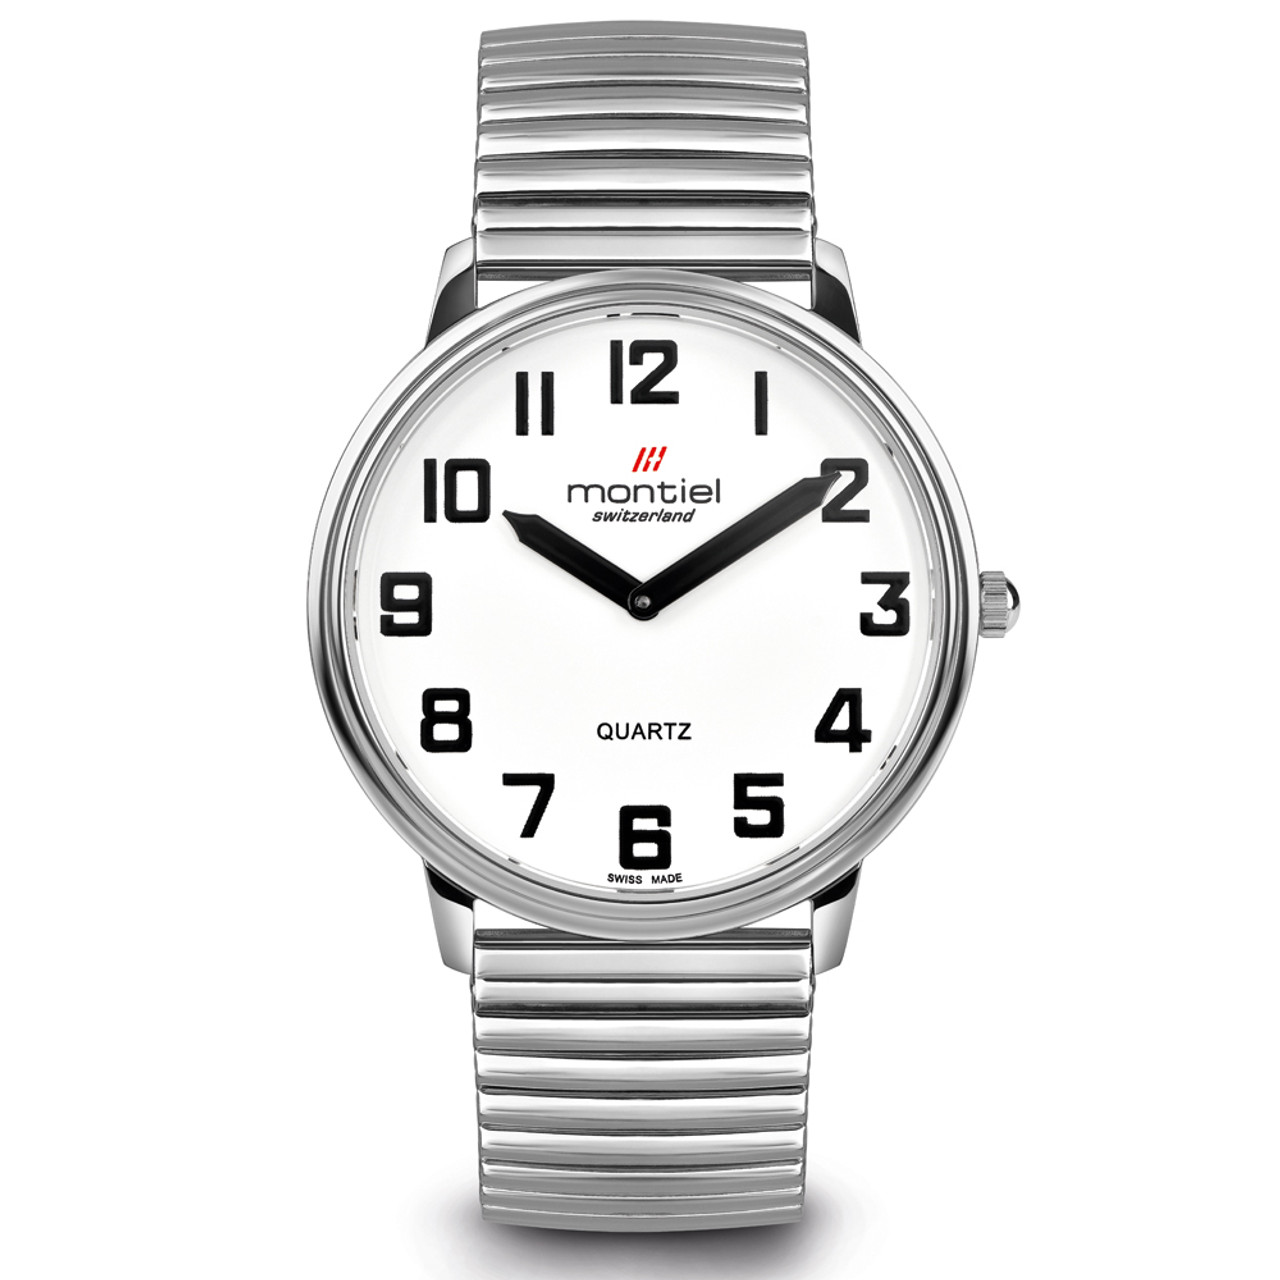 low vision watch